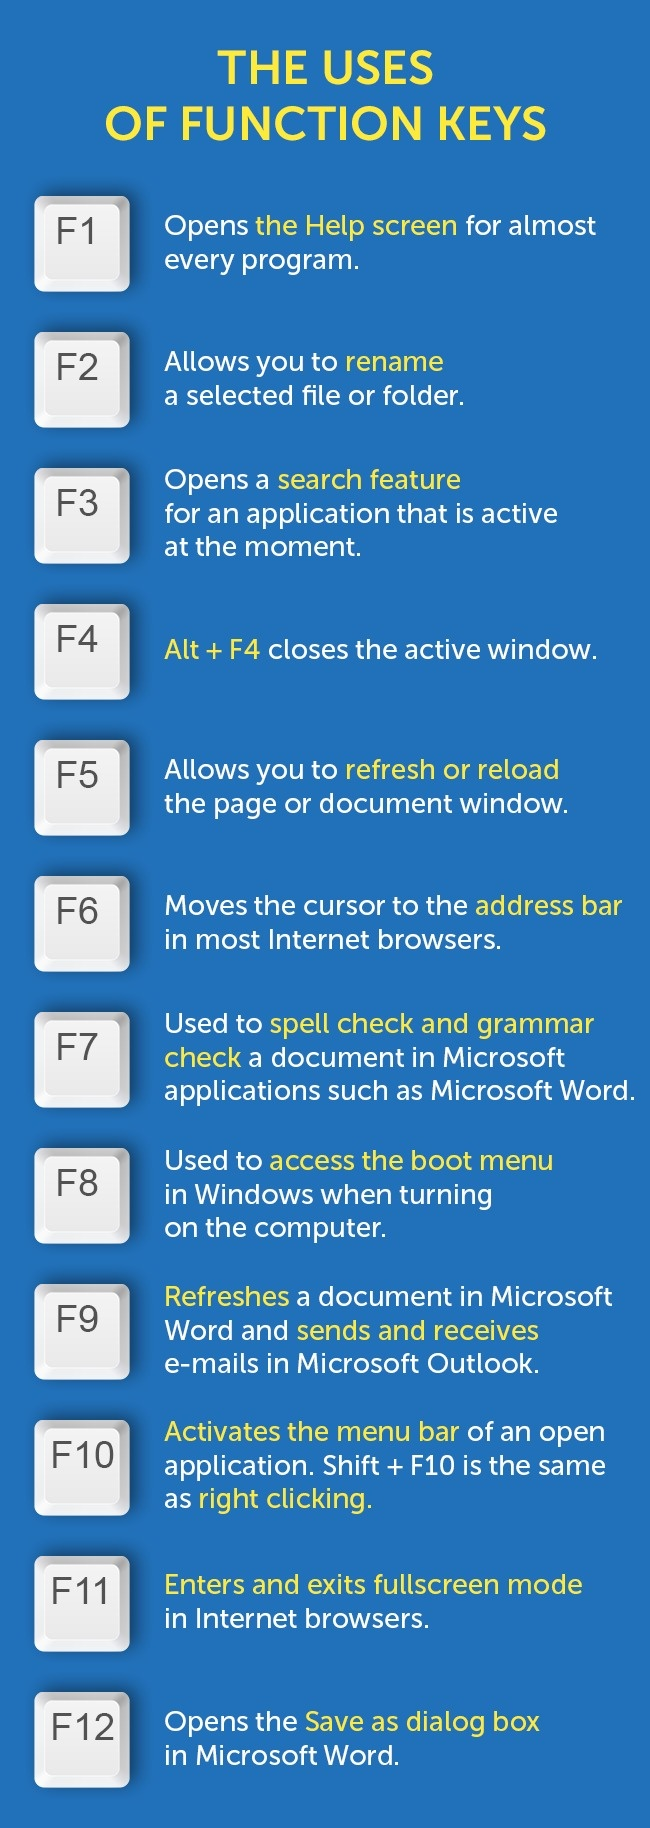 function keys uses